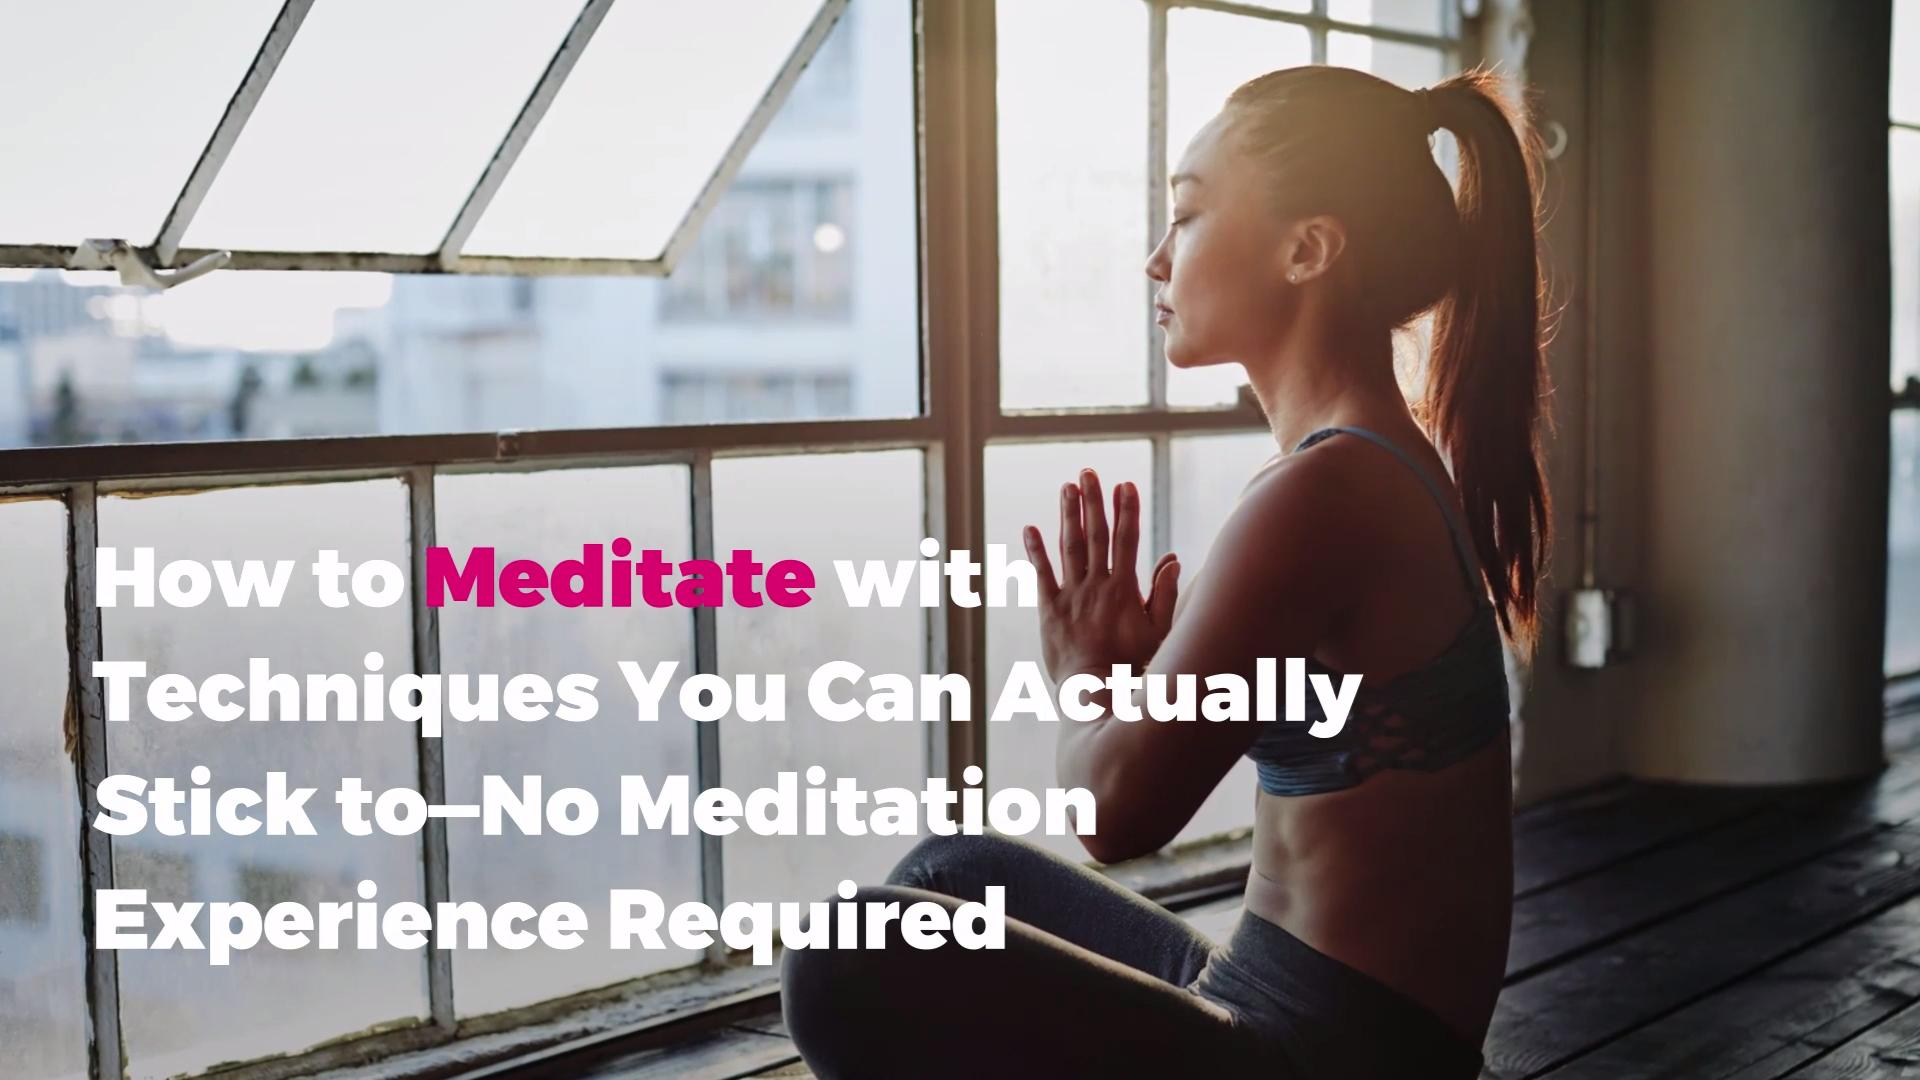 How to Meditate with Techniques You Can Actually Stick to—No Meditation Experience Required